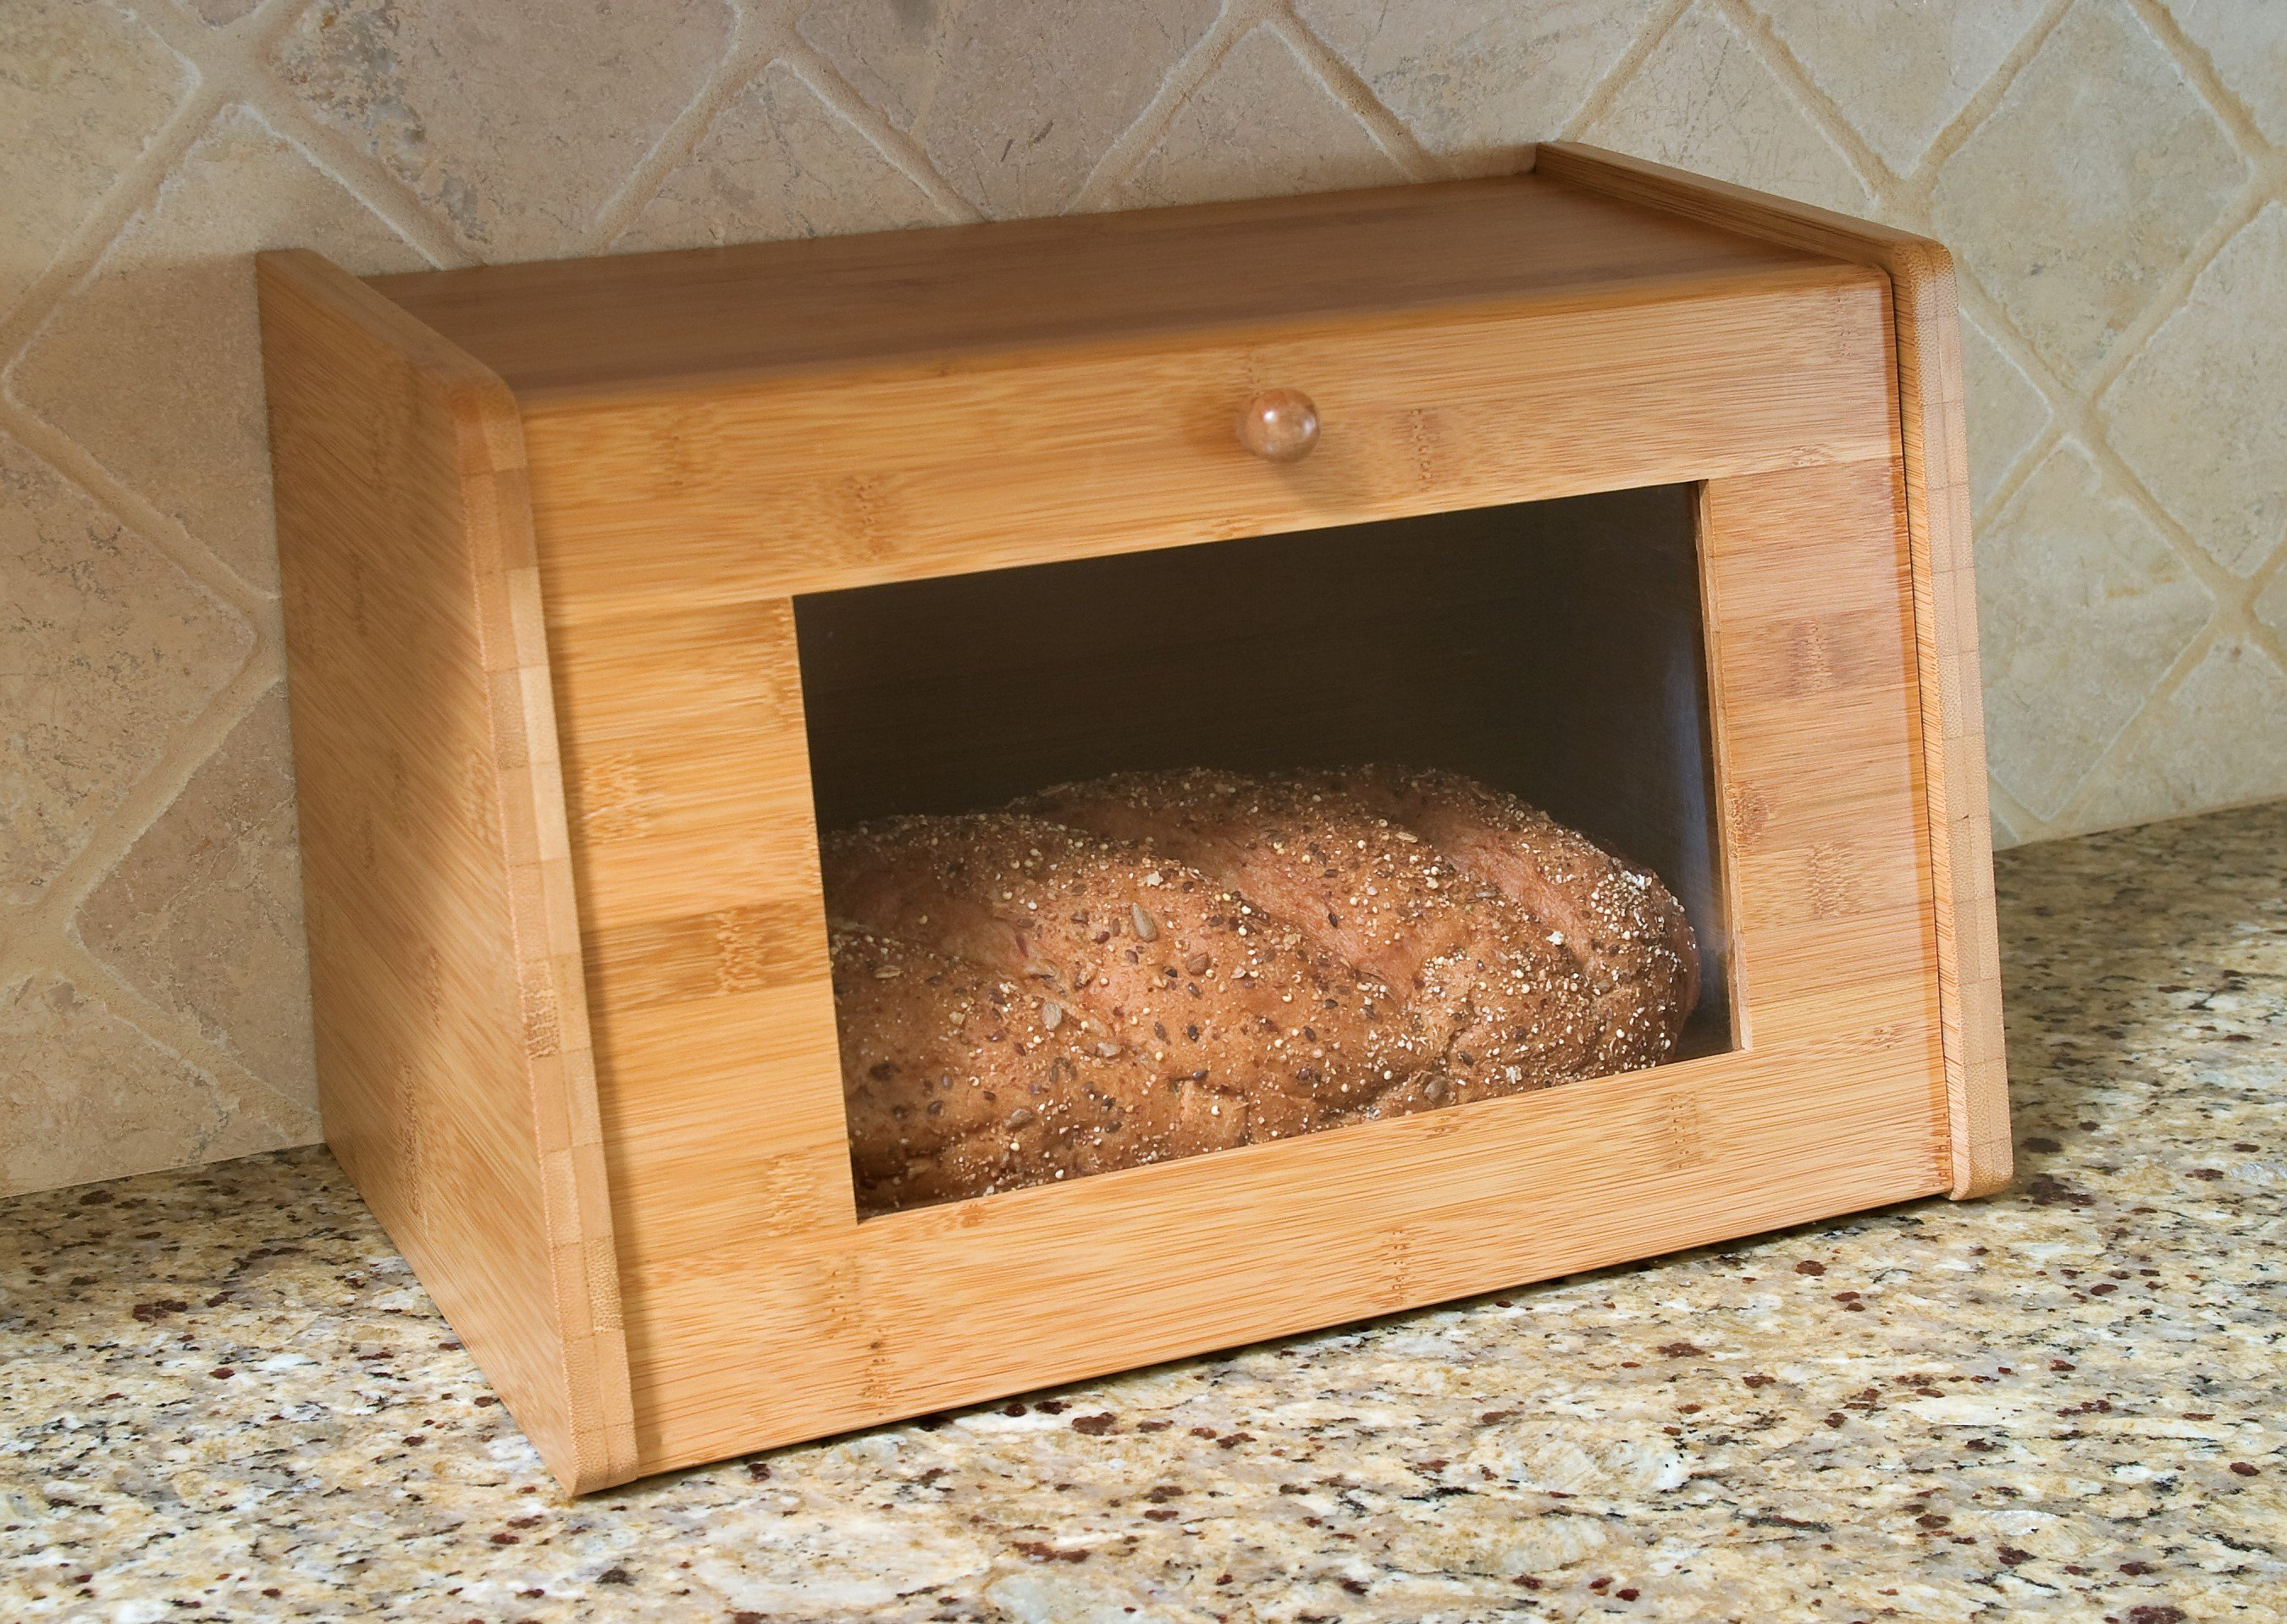 A Hinged bread box is one of the most common bread boxes around. This bread box comes with a handy window on the door, allowing you to see how much bread is left.